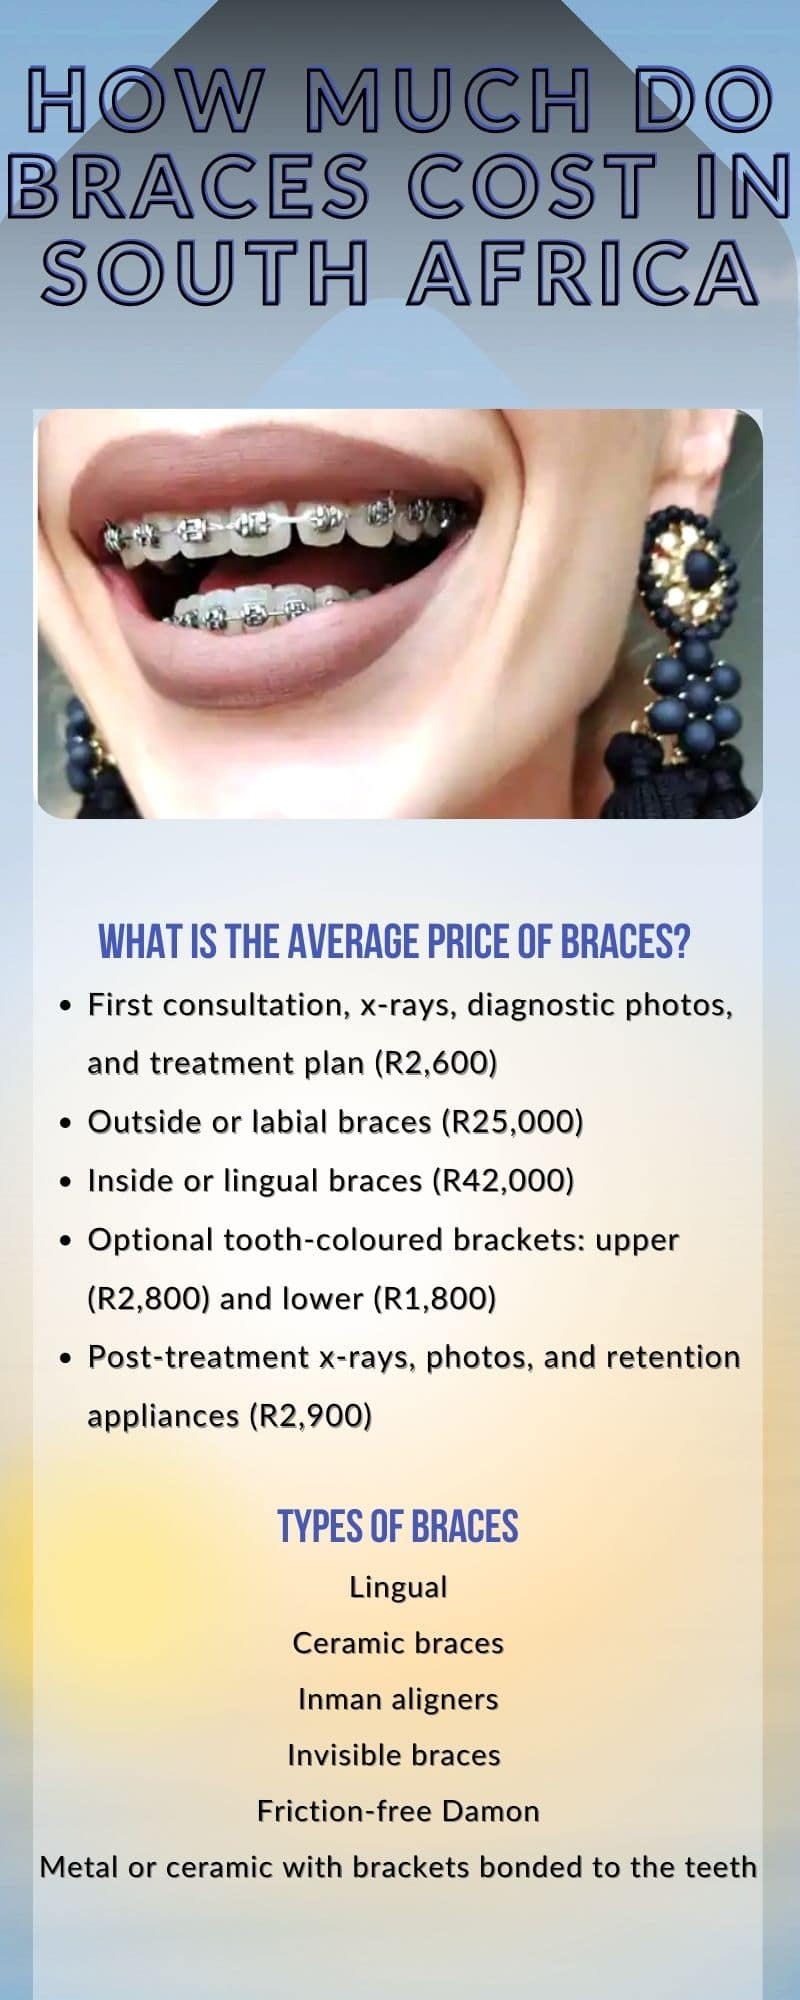 How much do braces cost in South Africa